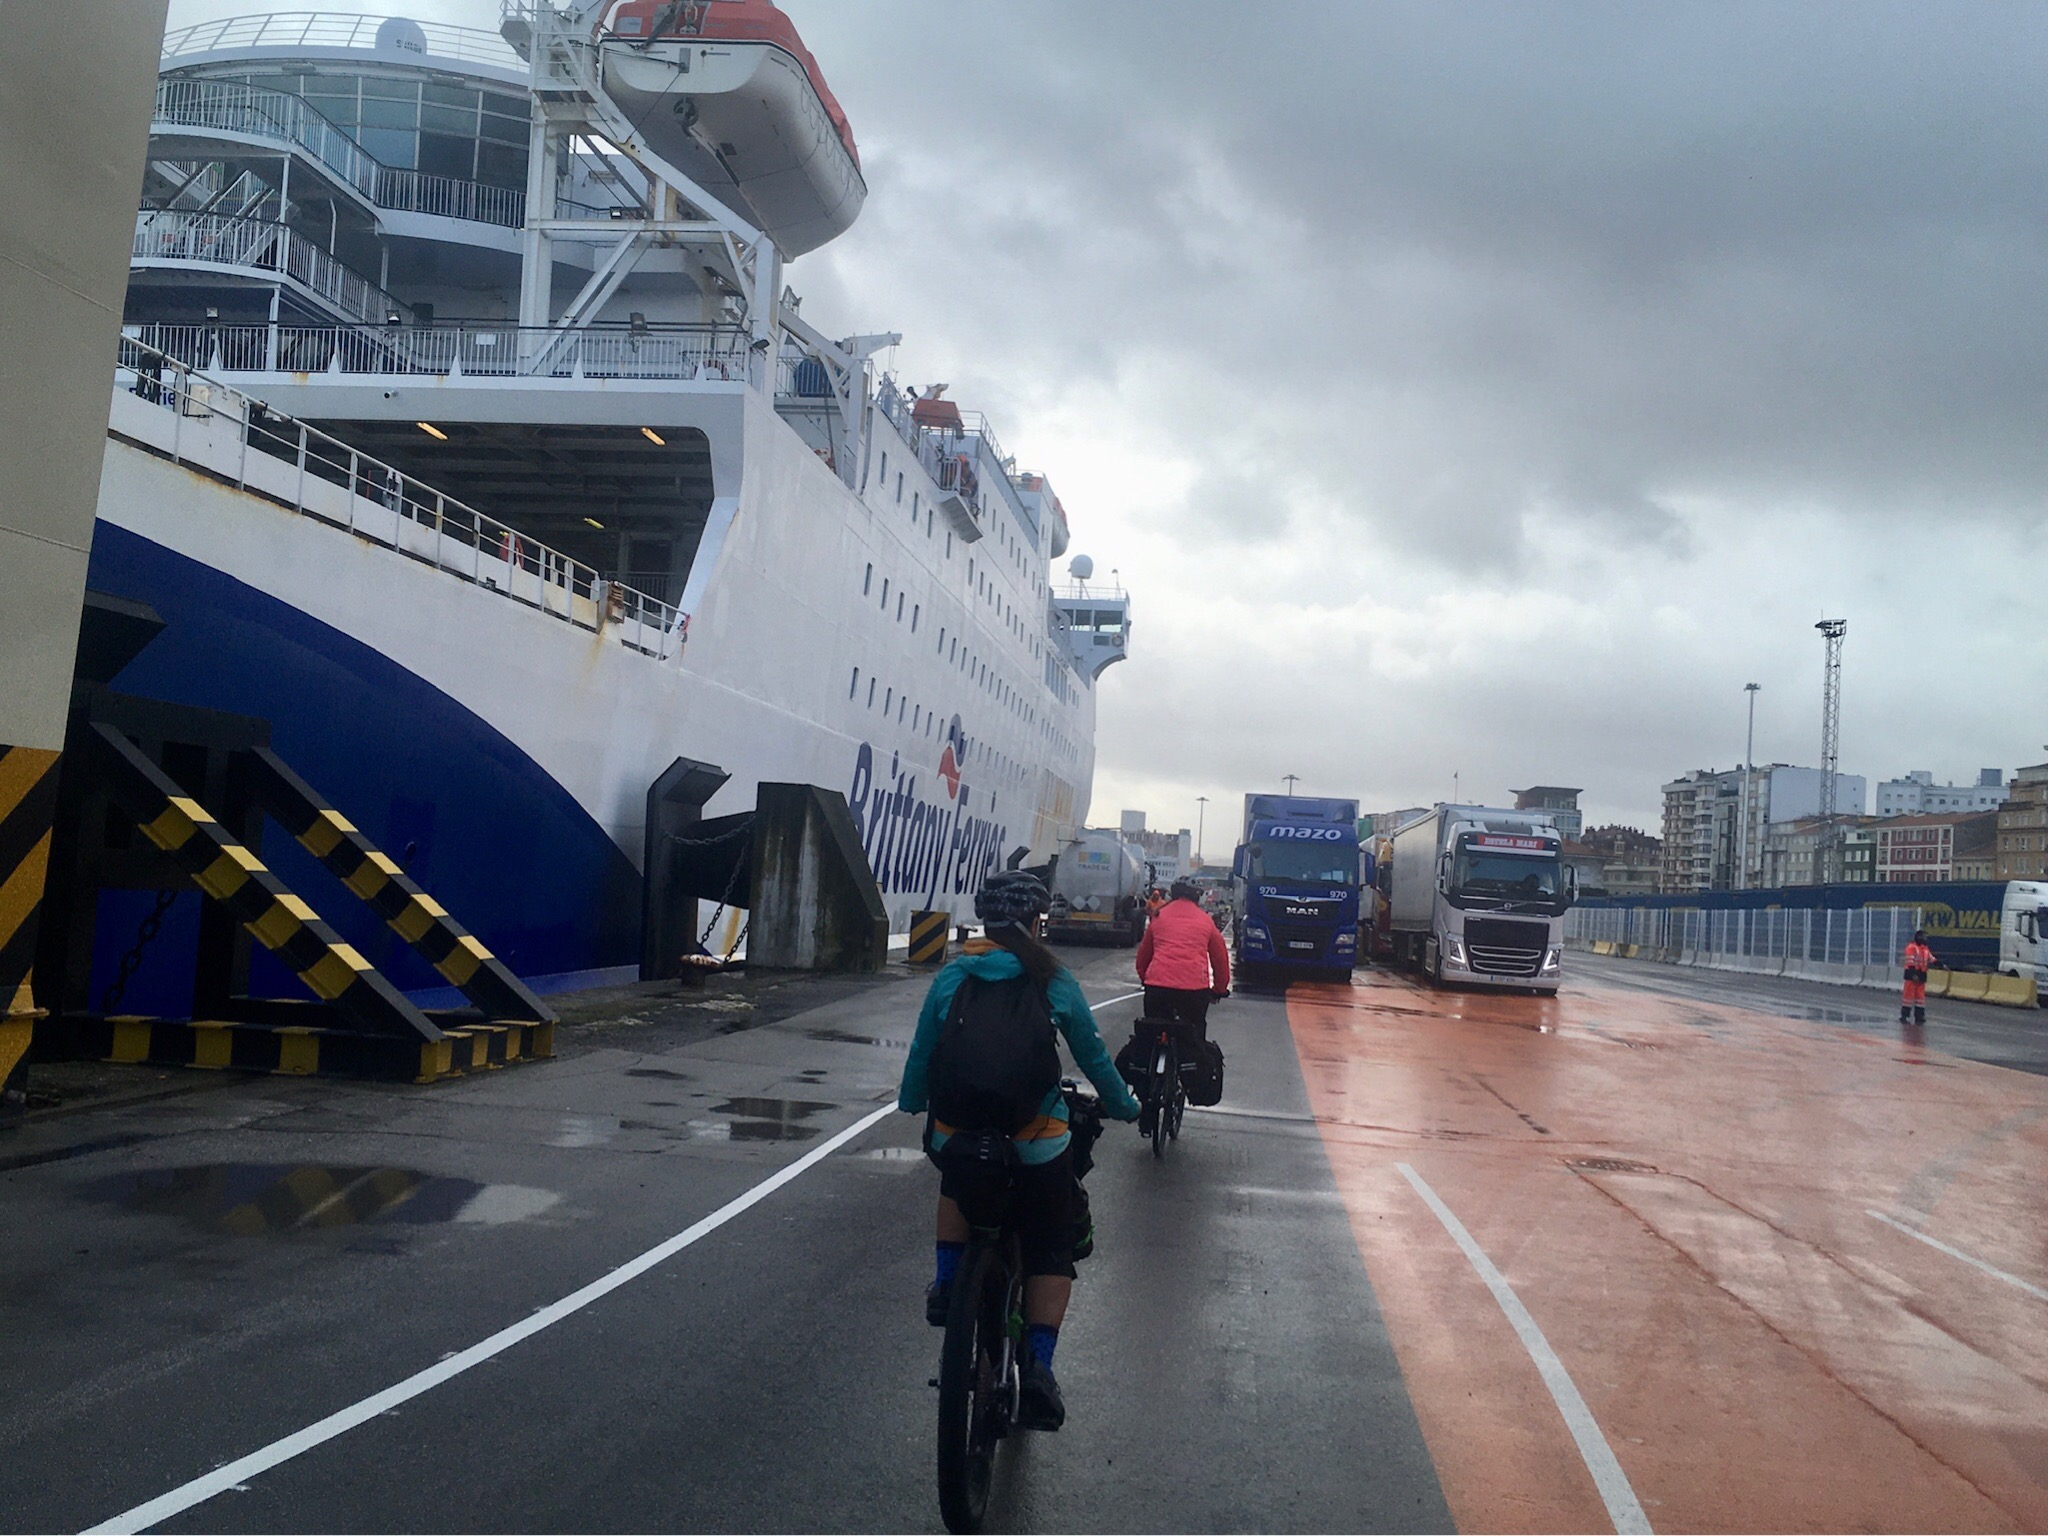 Riding off the ferry in Spain